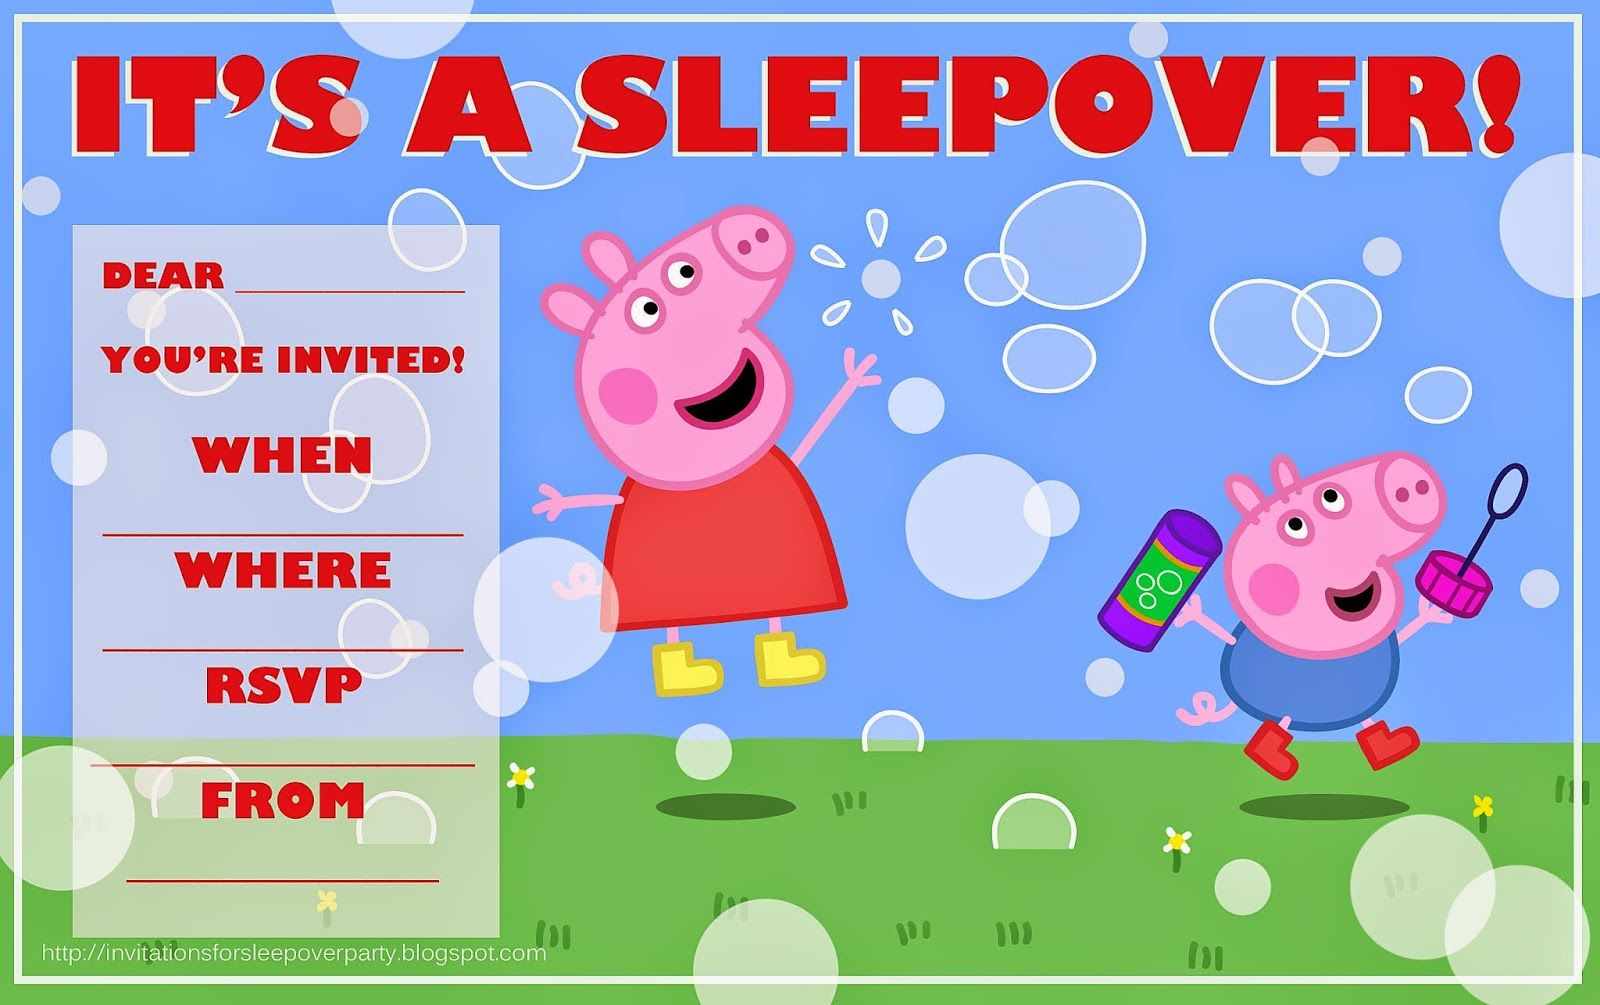 Free printable Peppa Pig party invitation  - for a sleepover party and one for a 'normal' party. See also the  cool Peppa Pig face mask you can print for your party FROM THIS SAME WEBSITE ON THE SAME PAGE AS THIS INVITE.